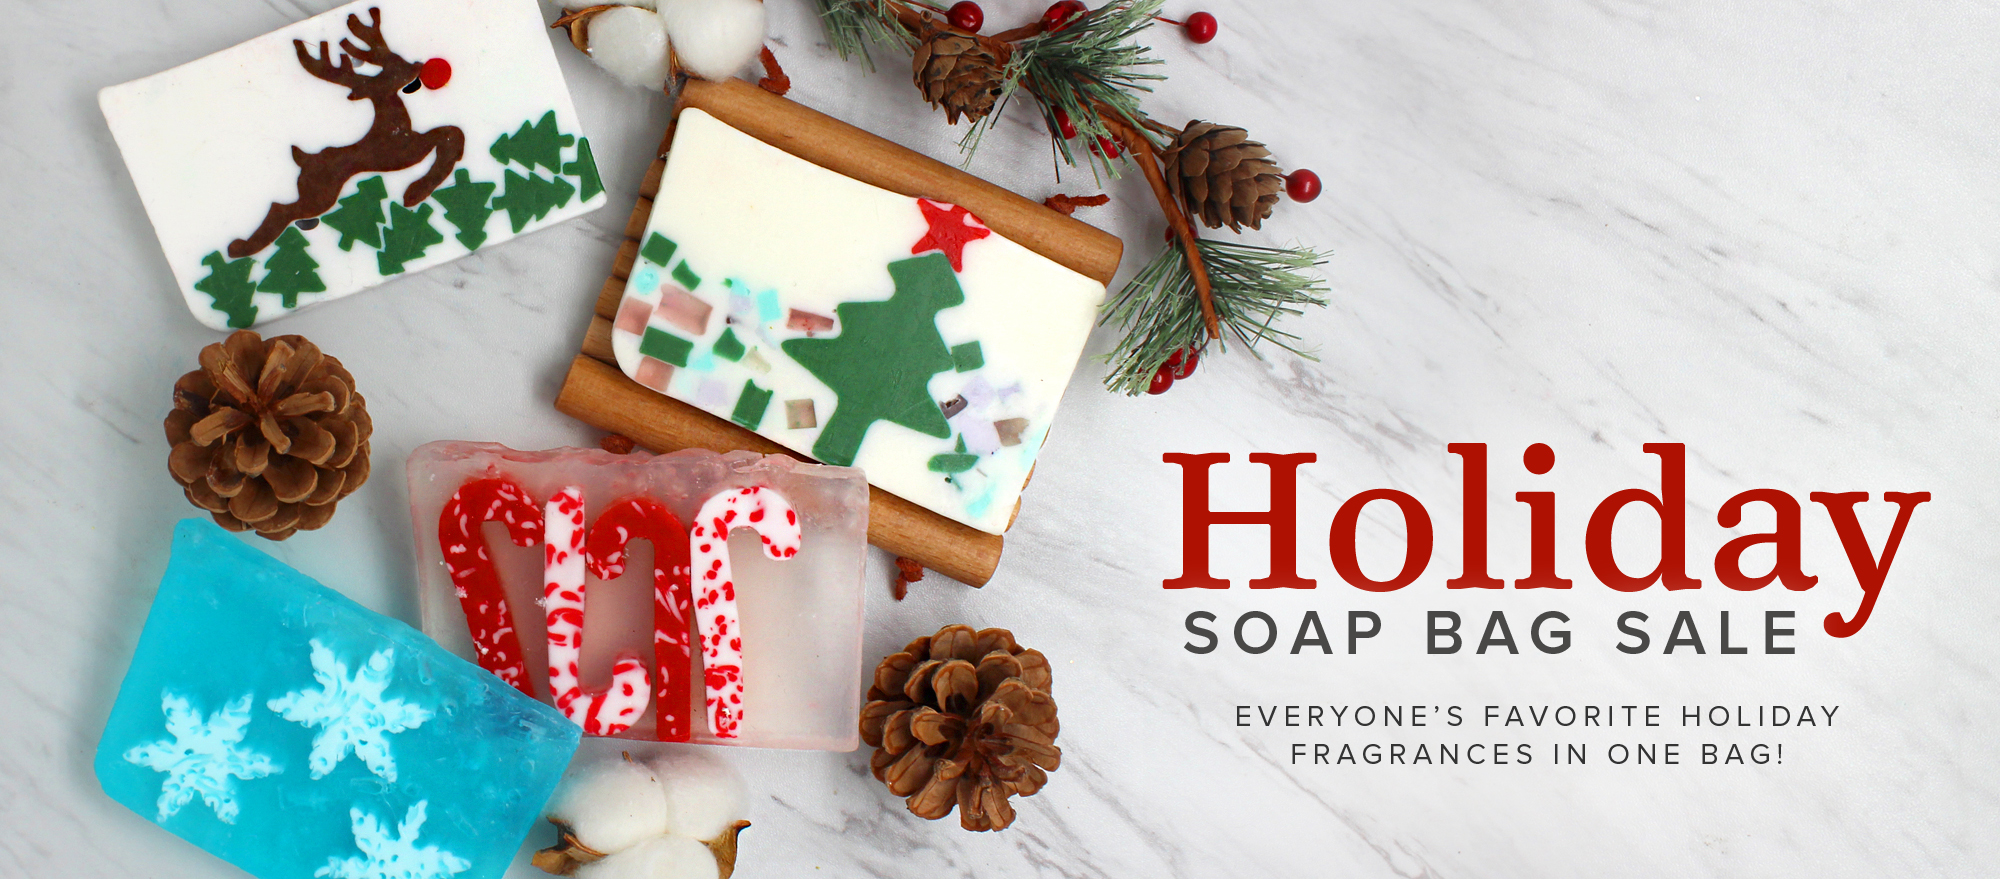 Holiday Soap Bag